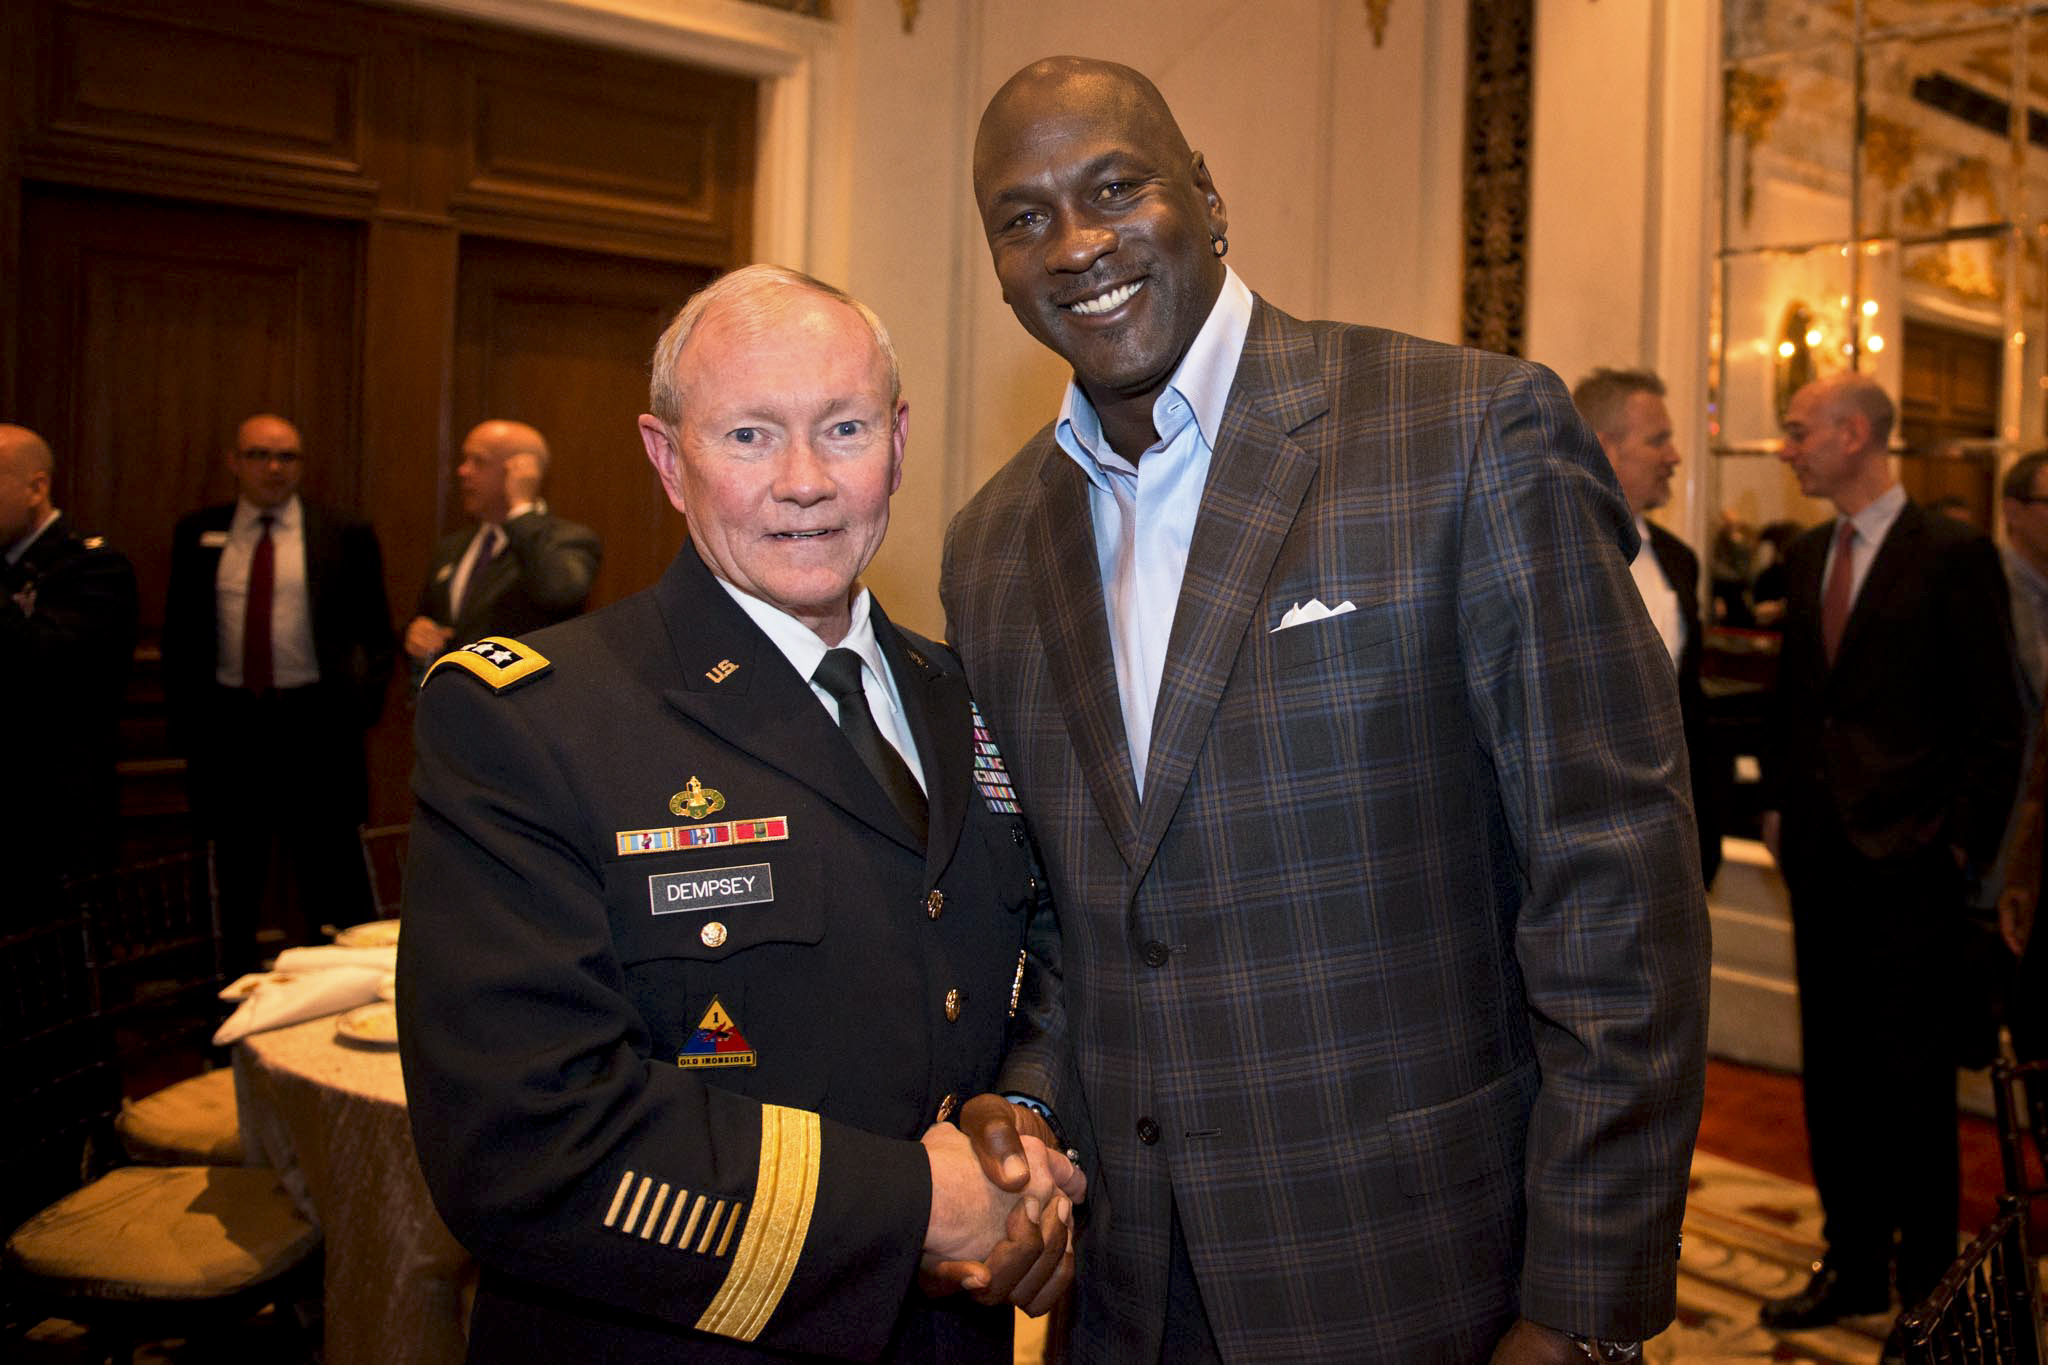 Martin E Dempsey Chairman Of The Joint Chiefs Staff And Michael Jordan Former Basketball Star Majority Owner Charlotte Bobcats